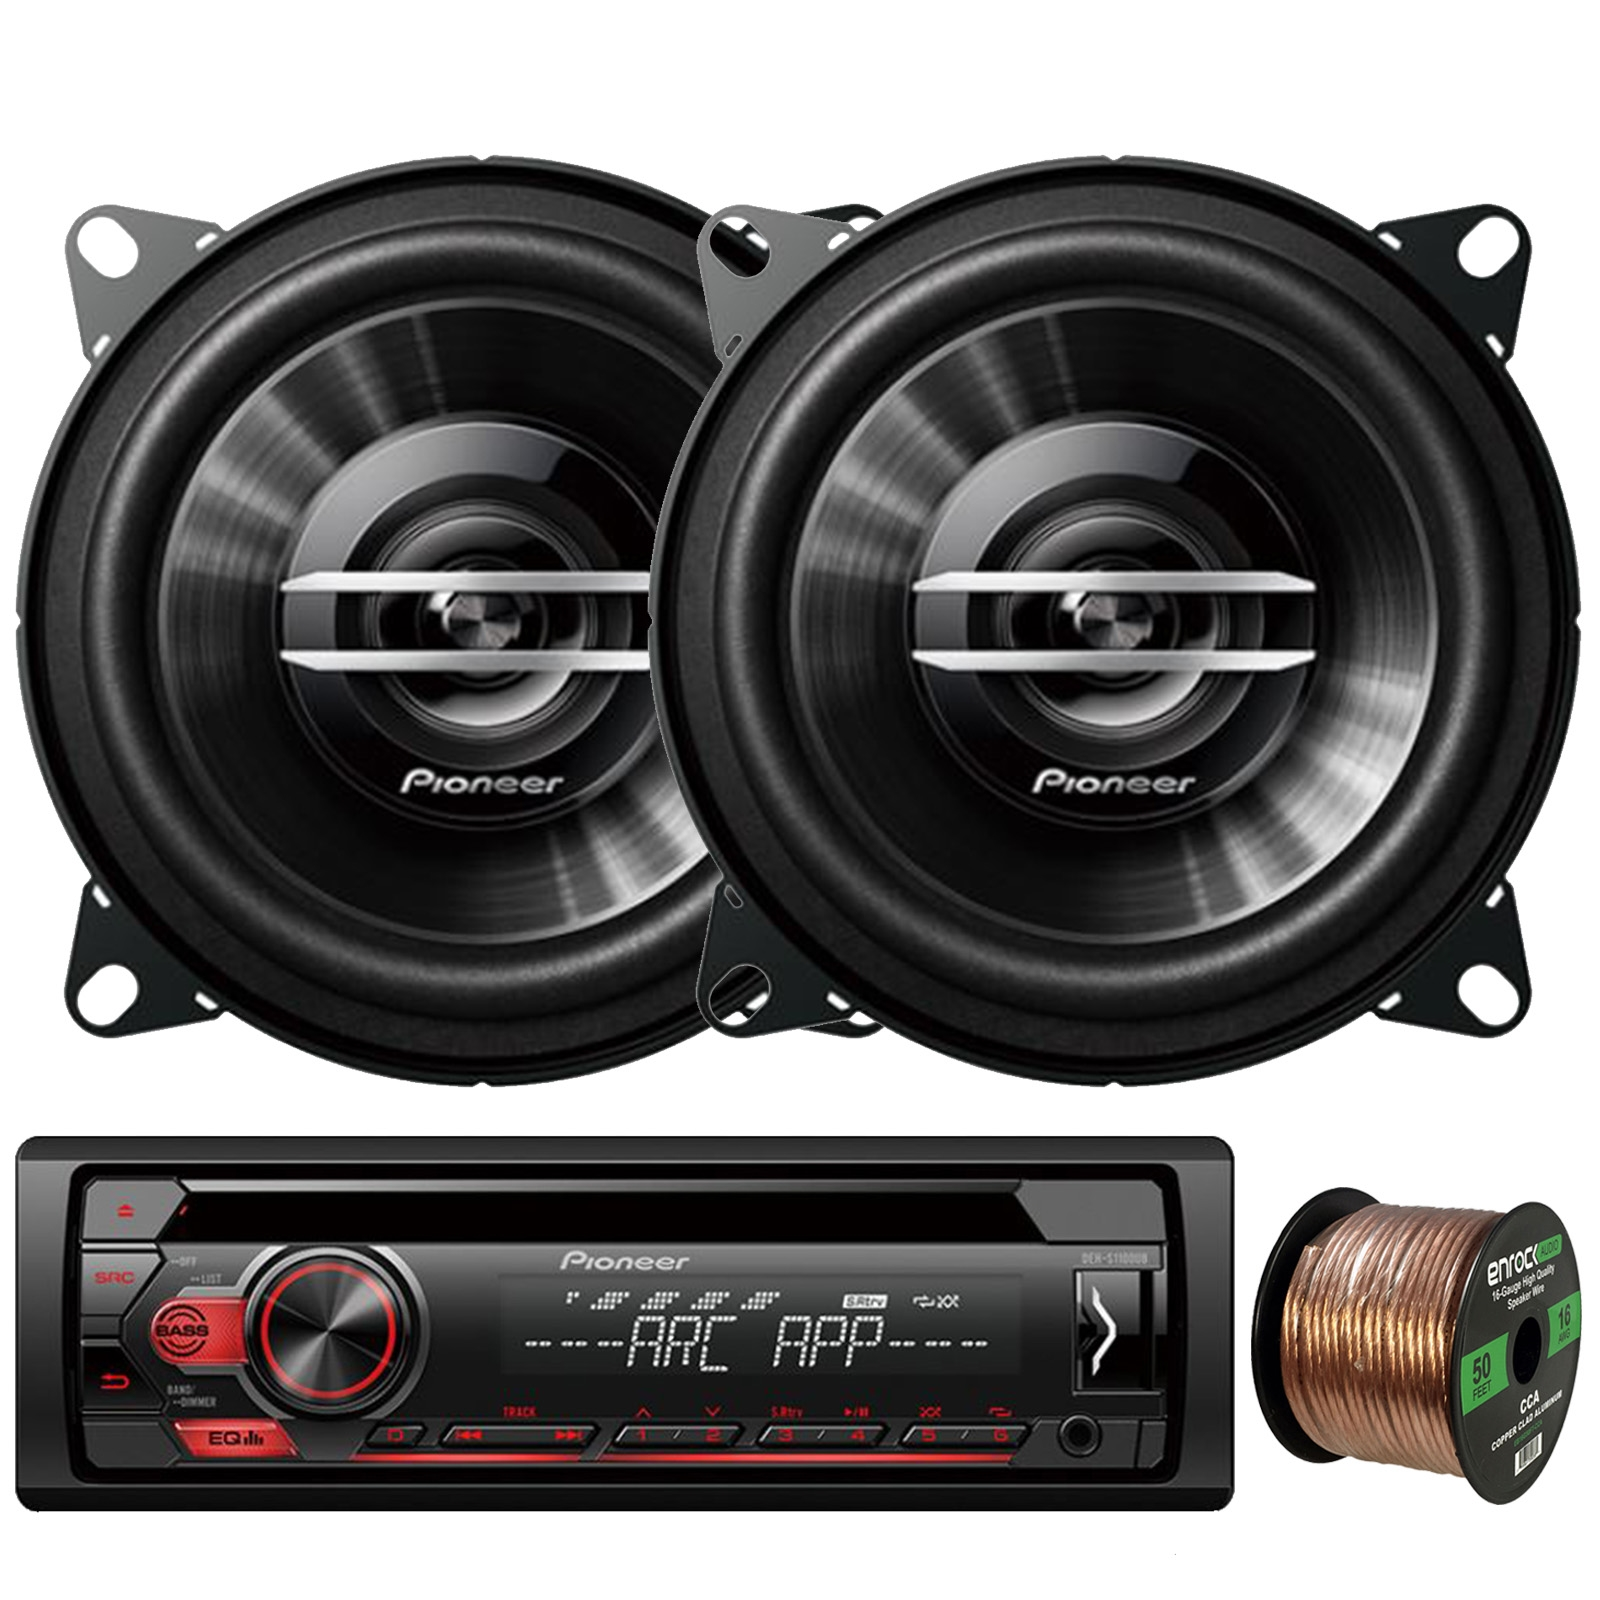 "Pioneer DEH-S1100UB Single-DIN CD Player AM/FM Car Stereo Receiver, 2 x Pioneer TS-G1020S 4"" 2-Way 210W Max Coaxial Car Speakers, Enrock Audio 16-Gauge 50Ft. CCA Speaker Wire"